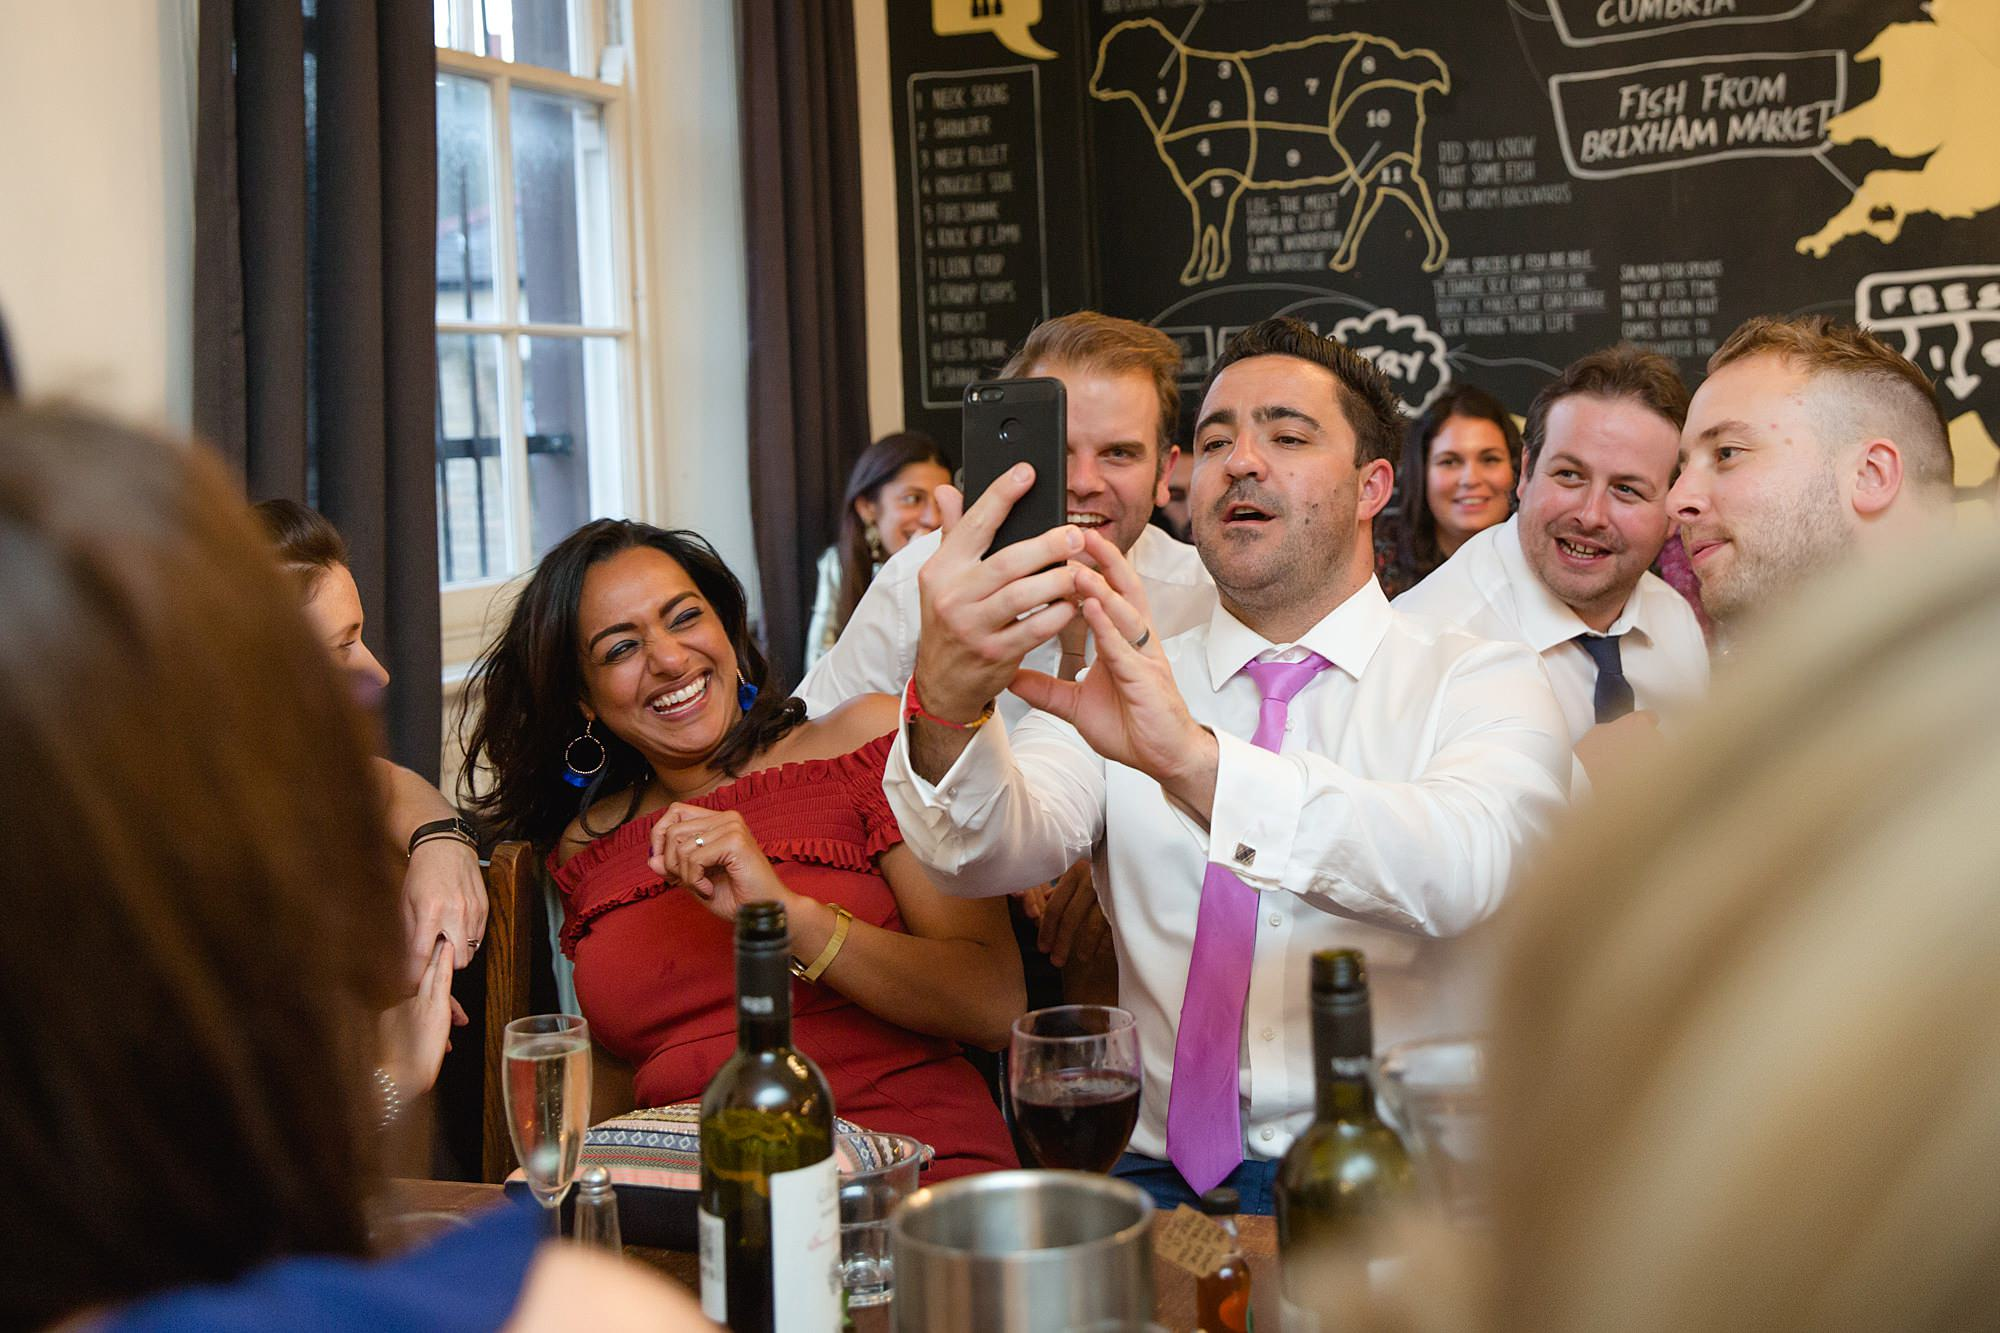 Prince albert camden wedding guests take selfies